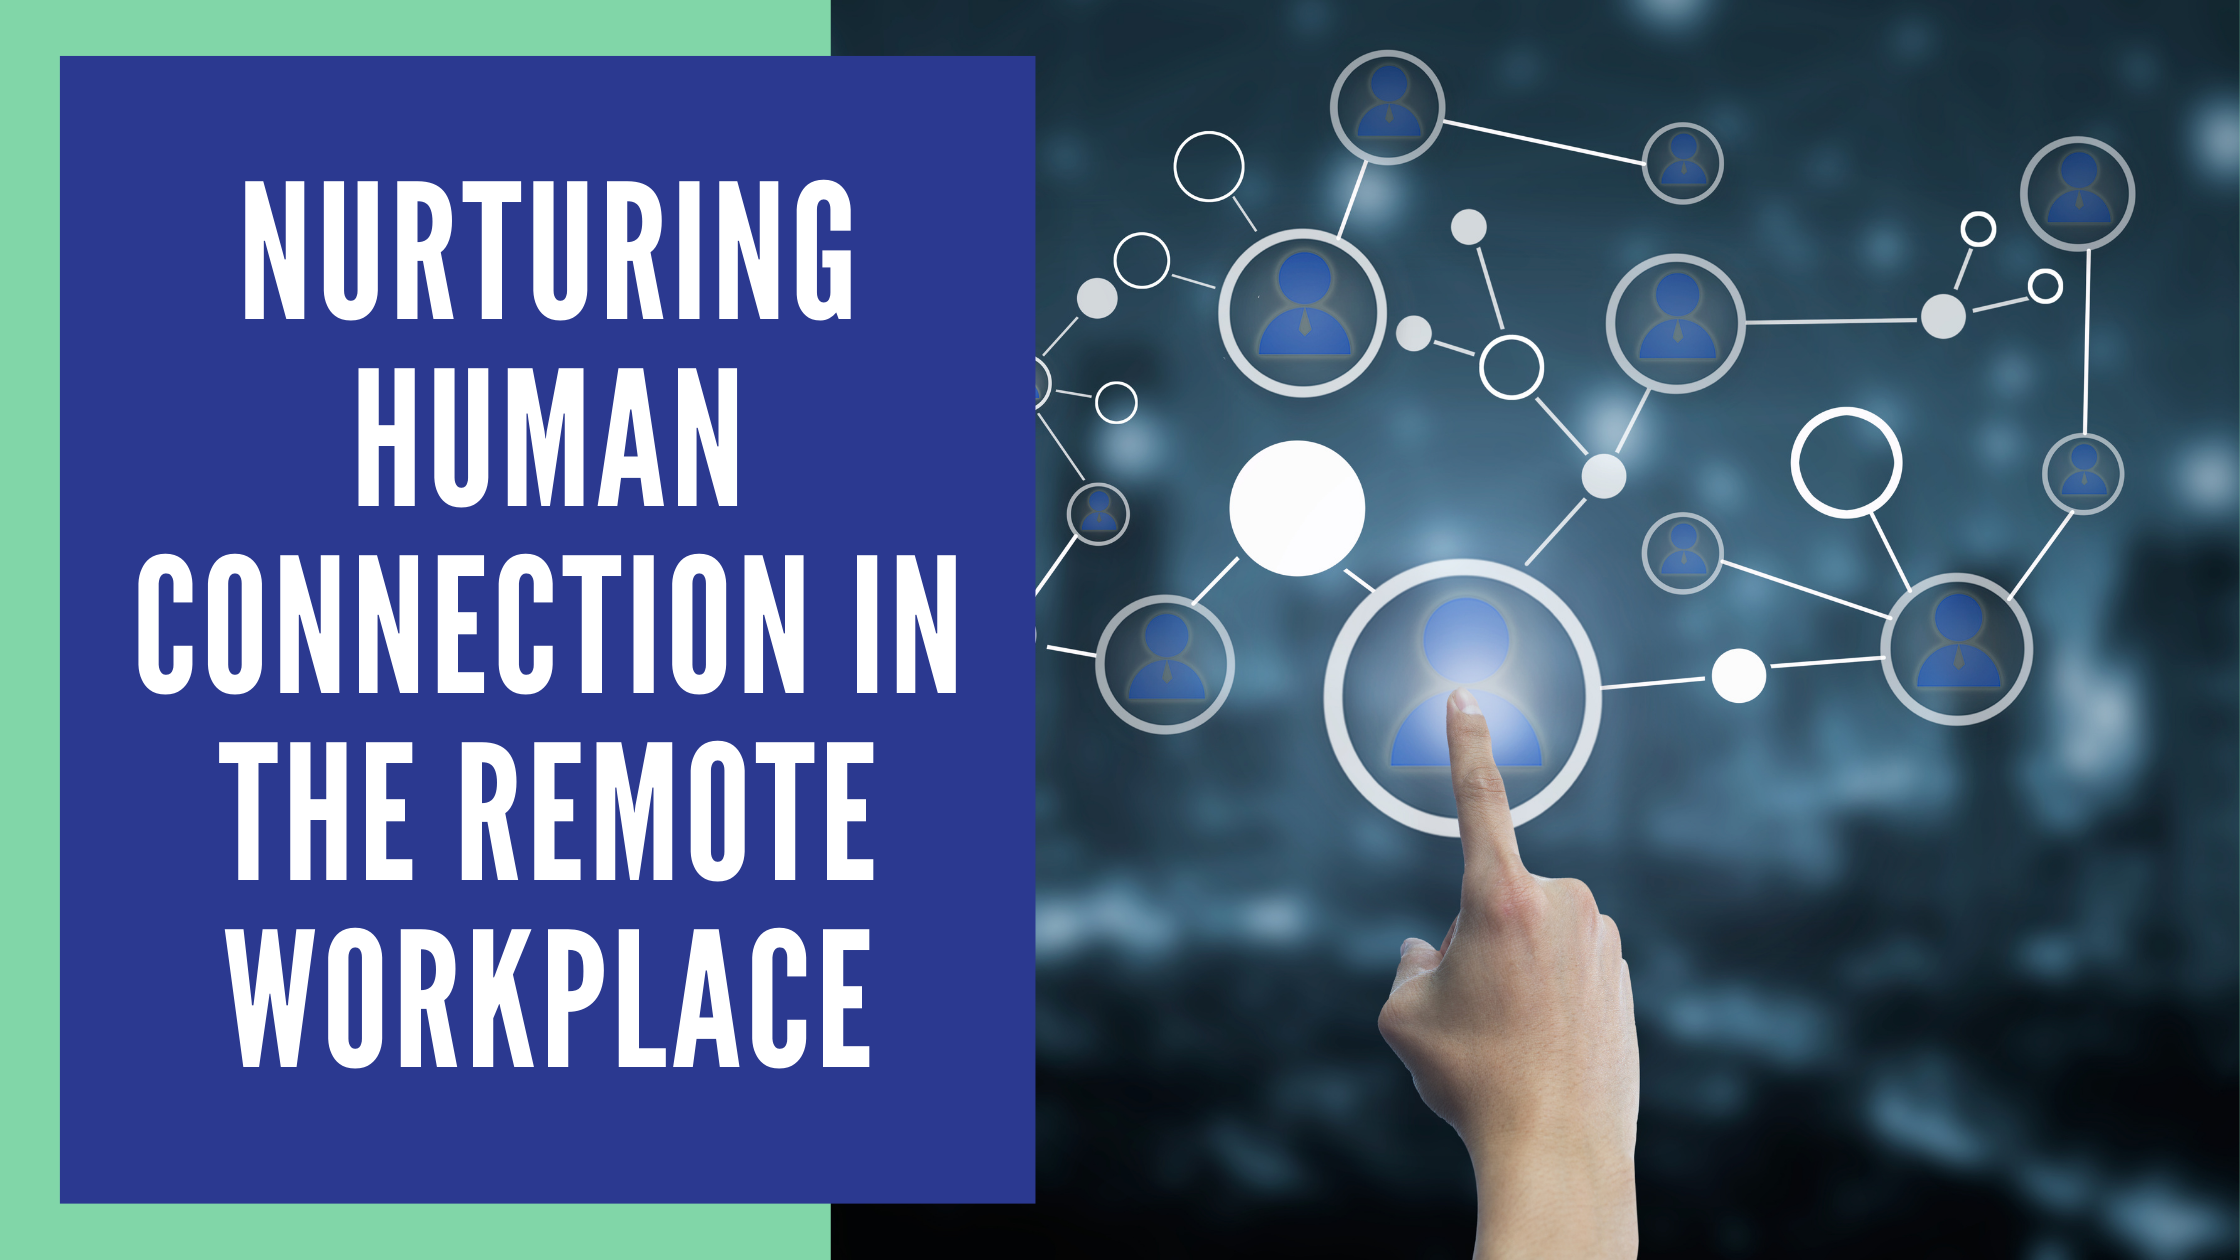 Nurturing Human Connection in the Remote Workplace